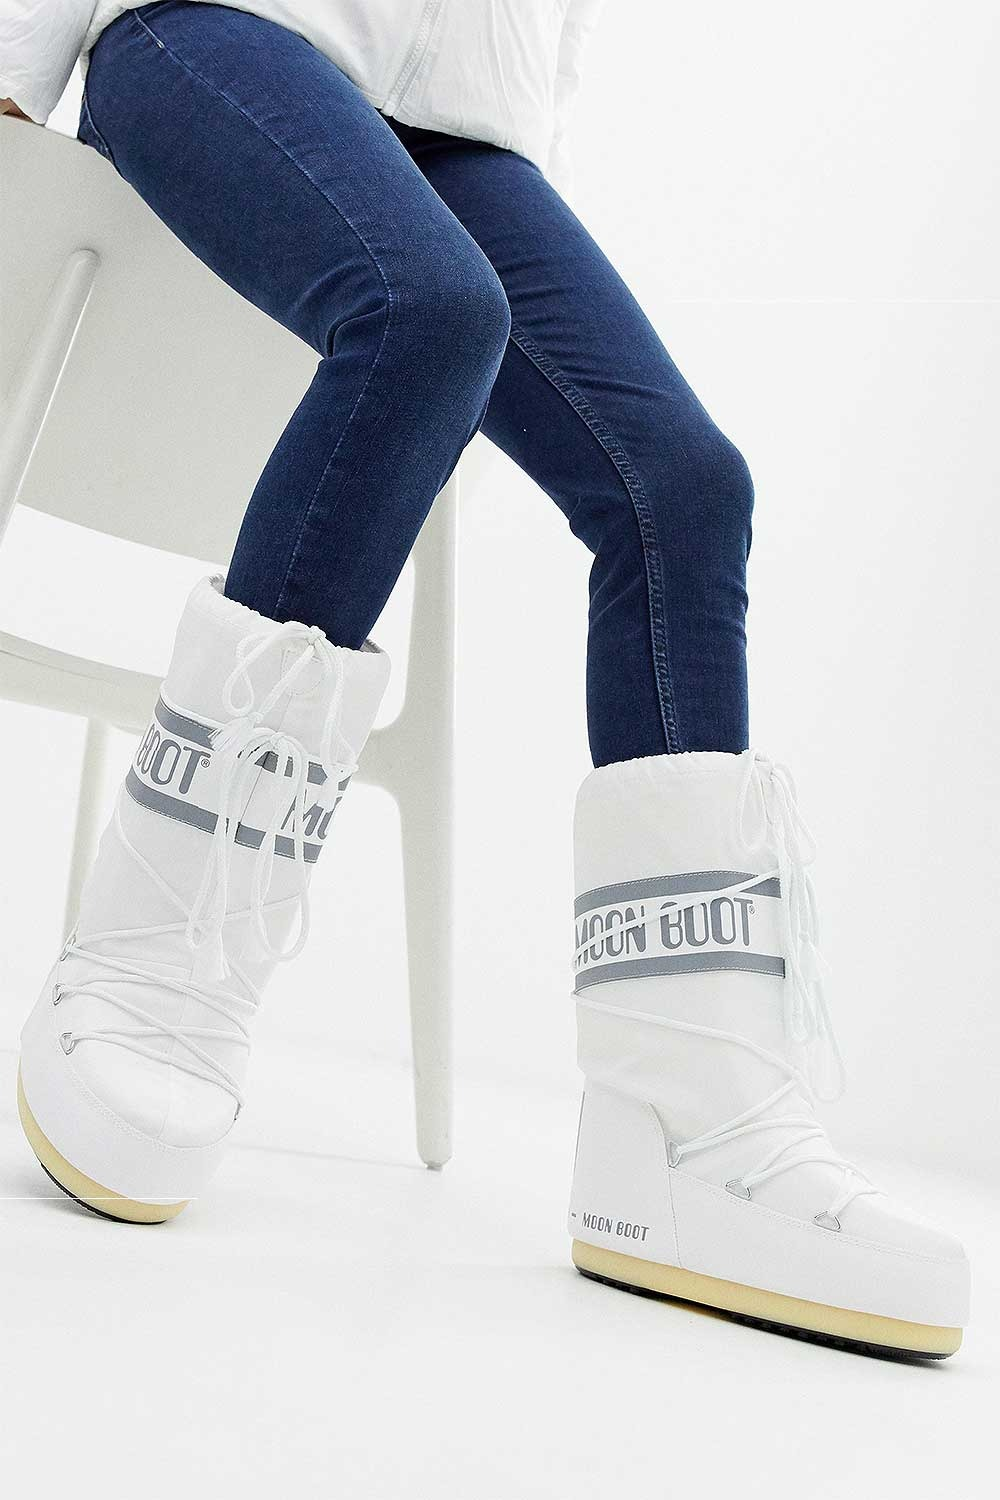 문부츠 여성 방한부츠 나일론 5MQ887WH / WHITE MOONBOOT WMS MOON BOOT NYLON_A6MQ887WH